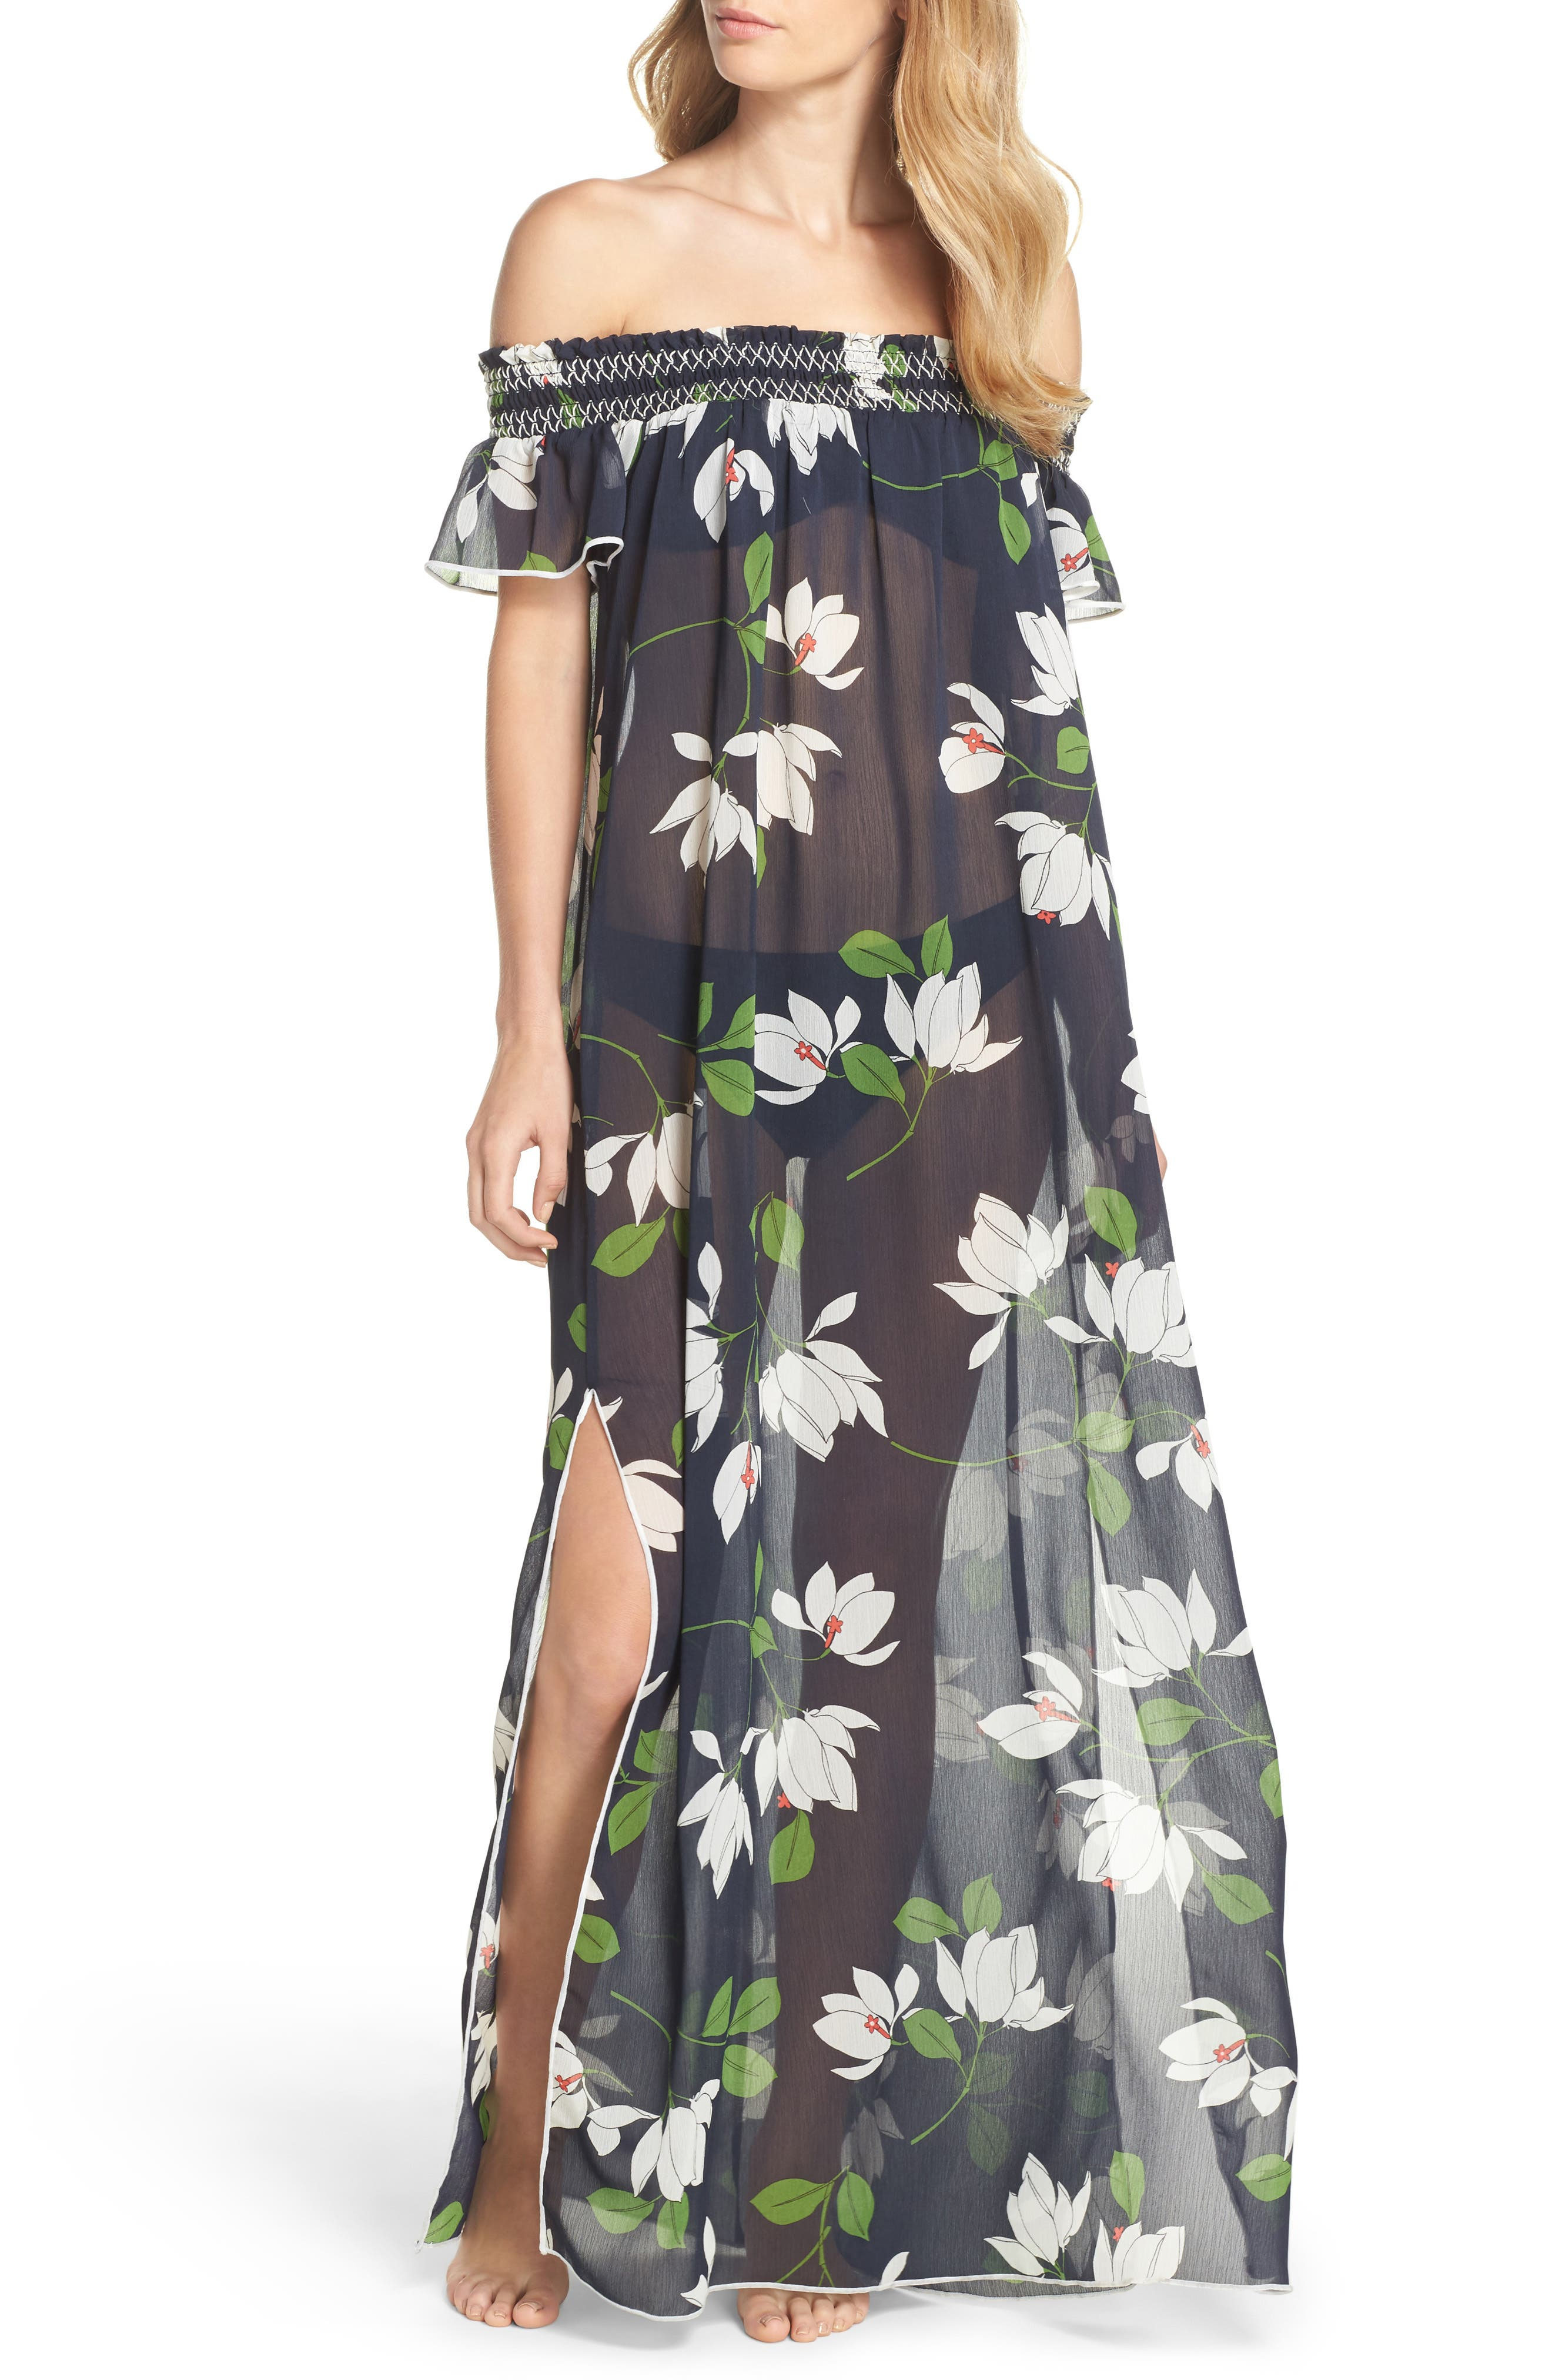 Sheer Off the Shoulder Cover-Up Dress,                         Main,                         color, Midnight/ Multi